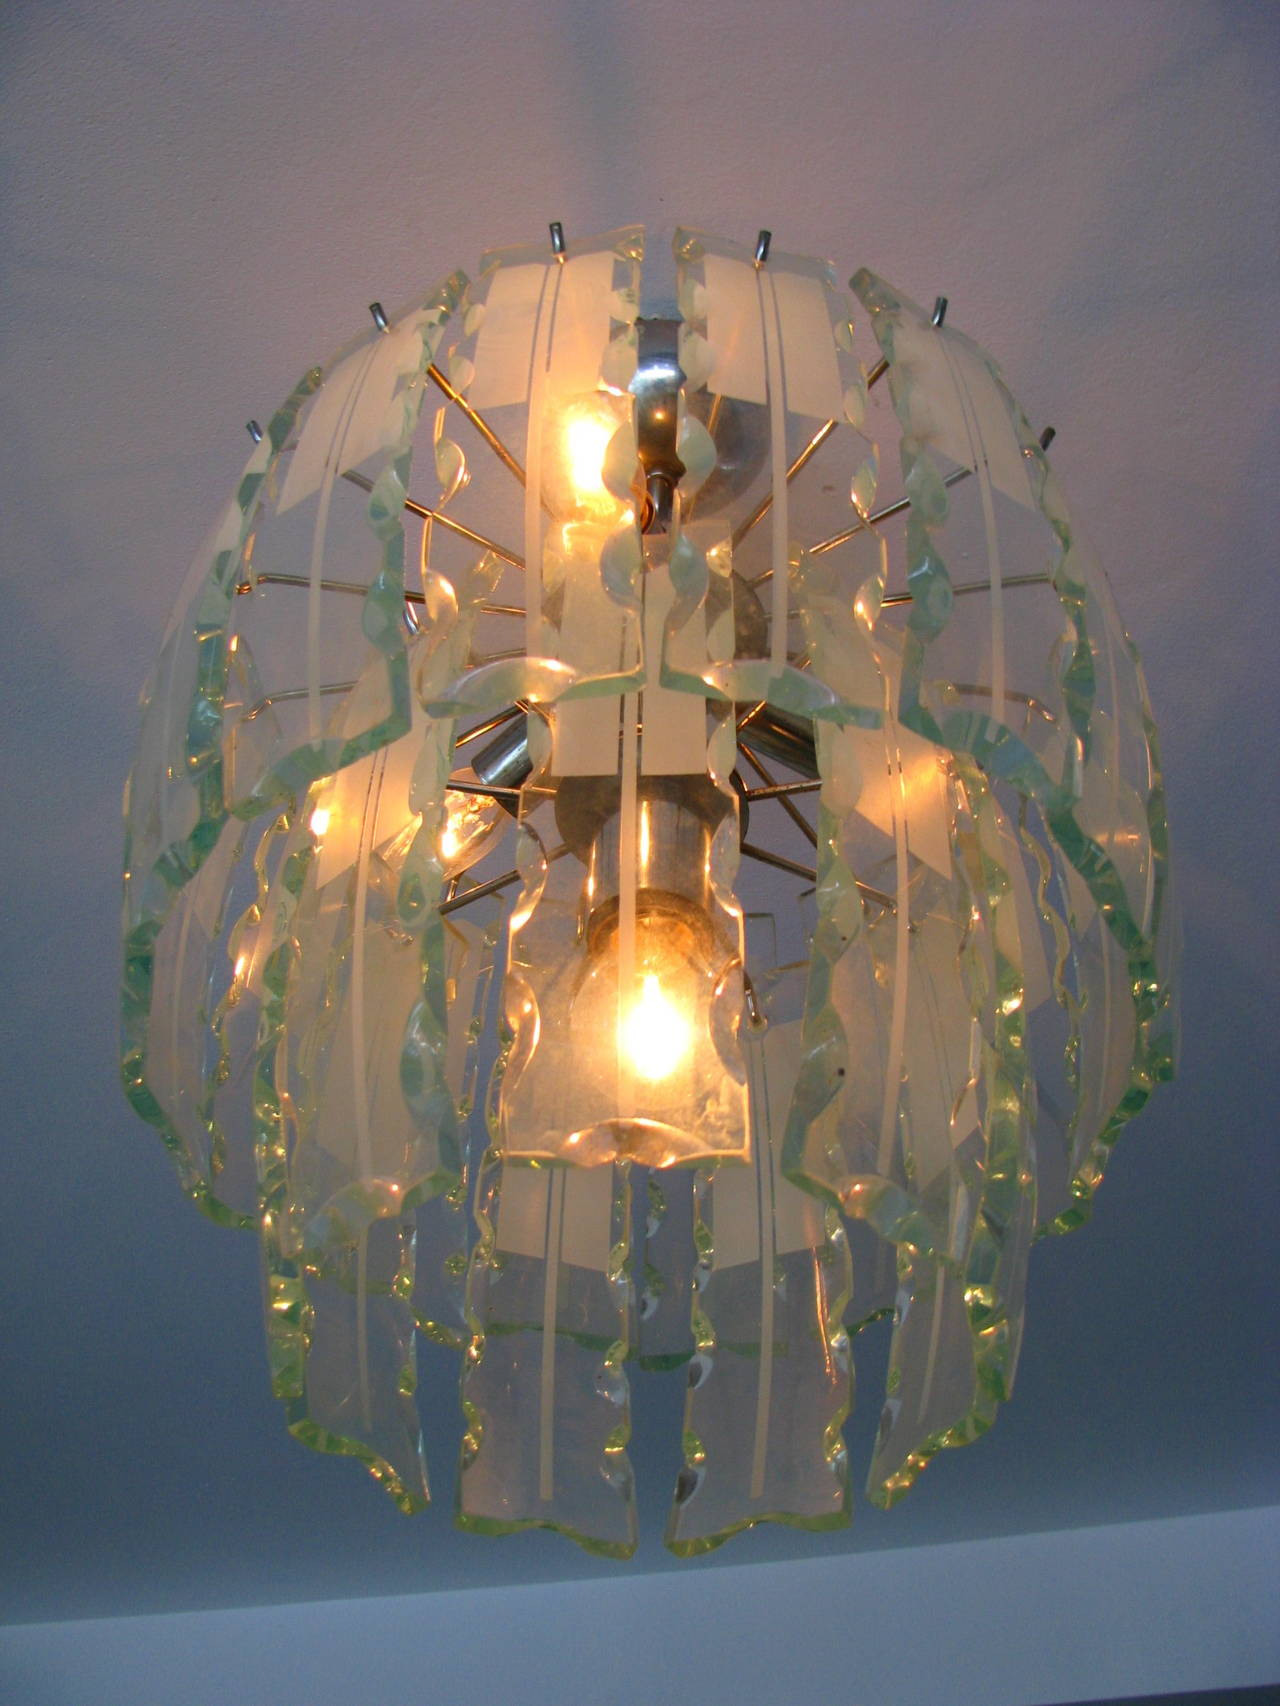 Mid-20th Century Fontana Arte Style Frosted Glass Chandelier, Italy, 1960 For Sale